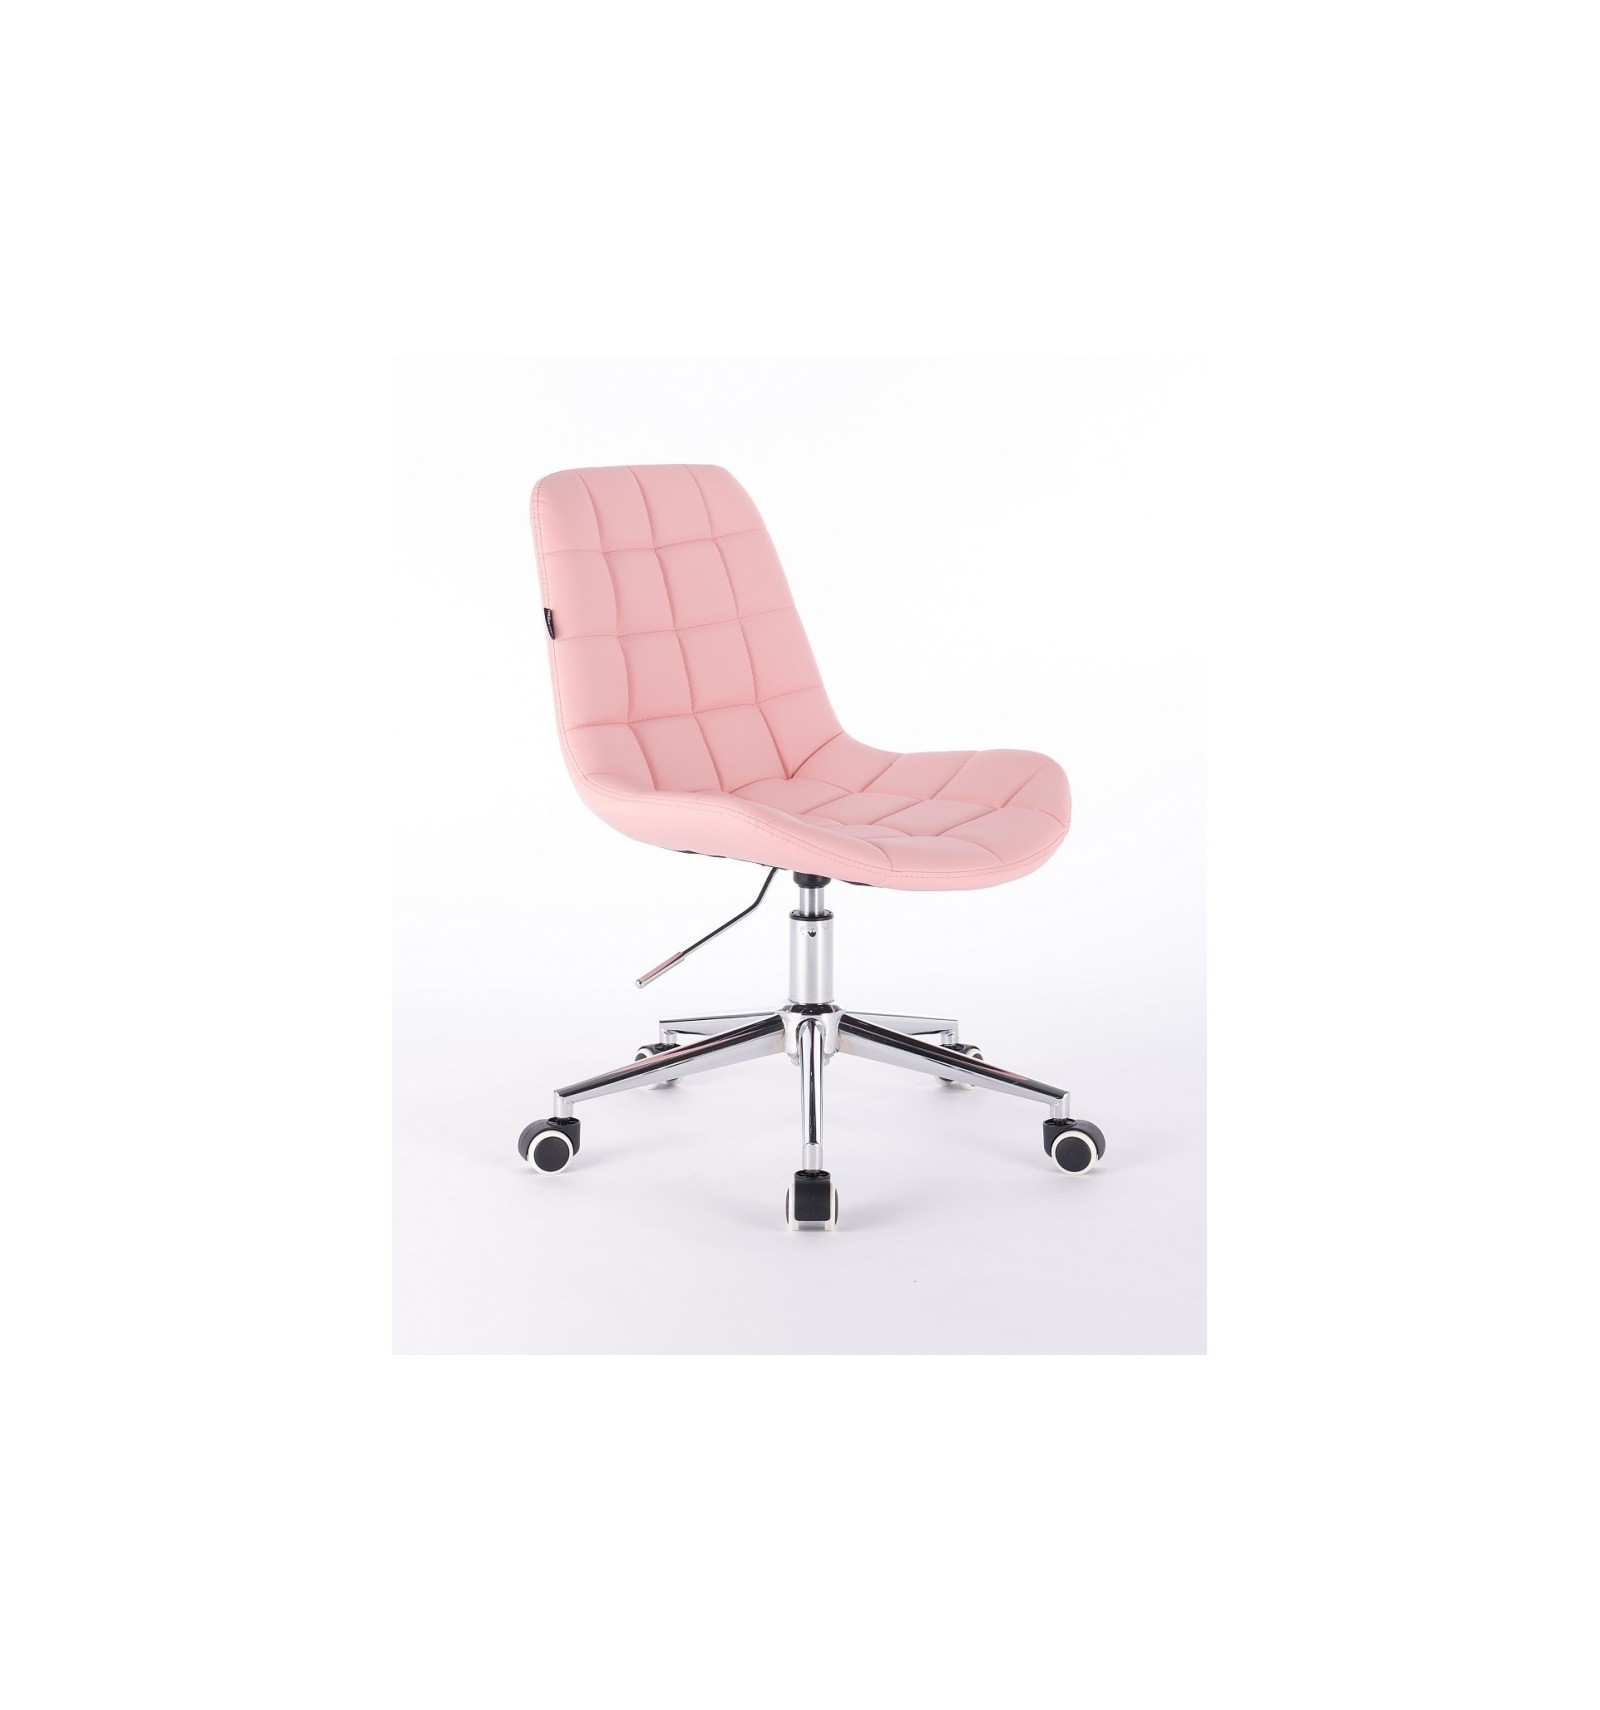 pink nail salon chairs lawn chair repair vinyl strapping gorgeous hroove for beauty salons or hairdressers dublin on wheels bella furniture ireland scandinavian style bf590k